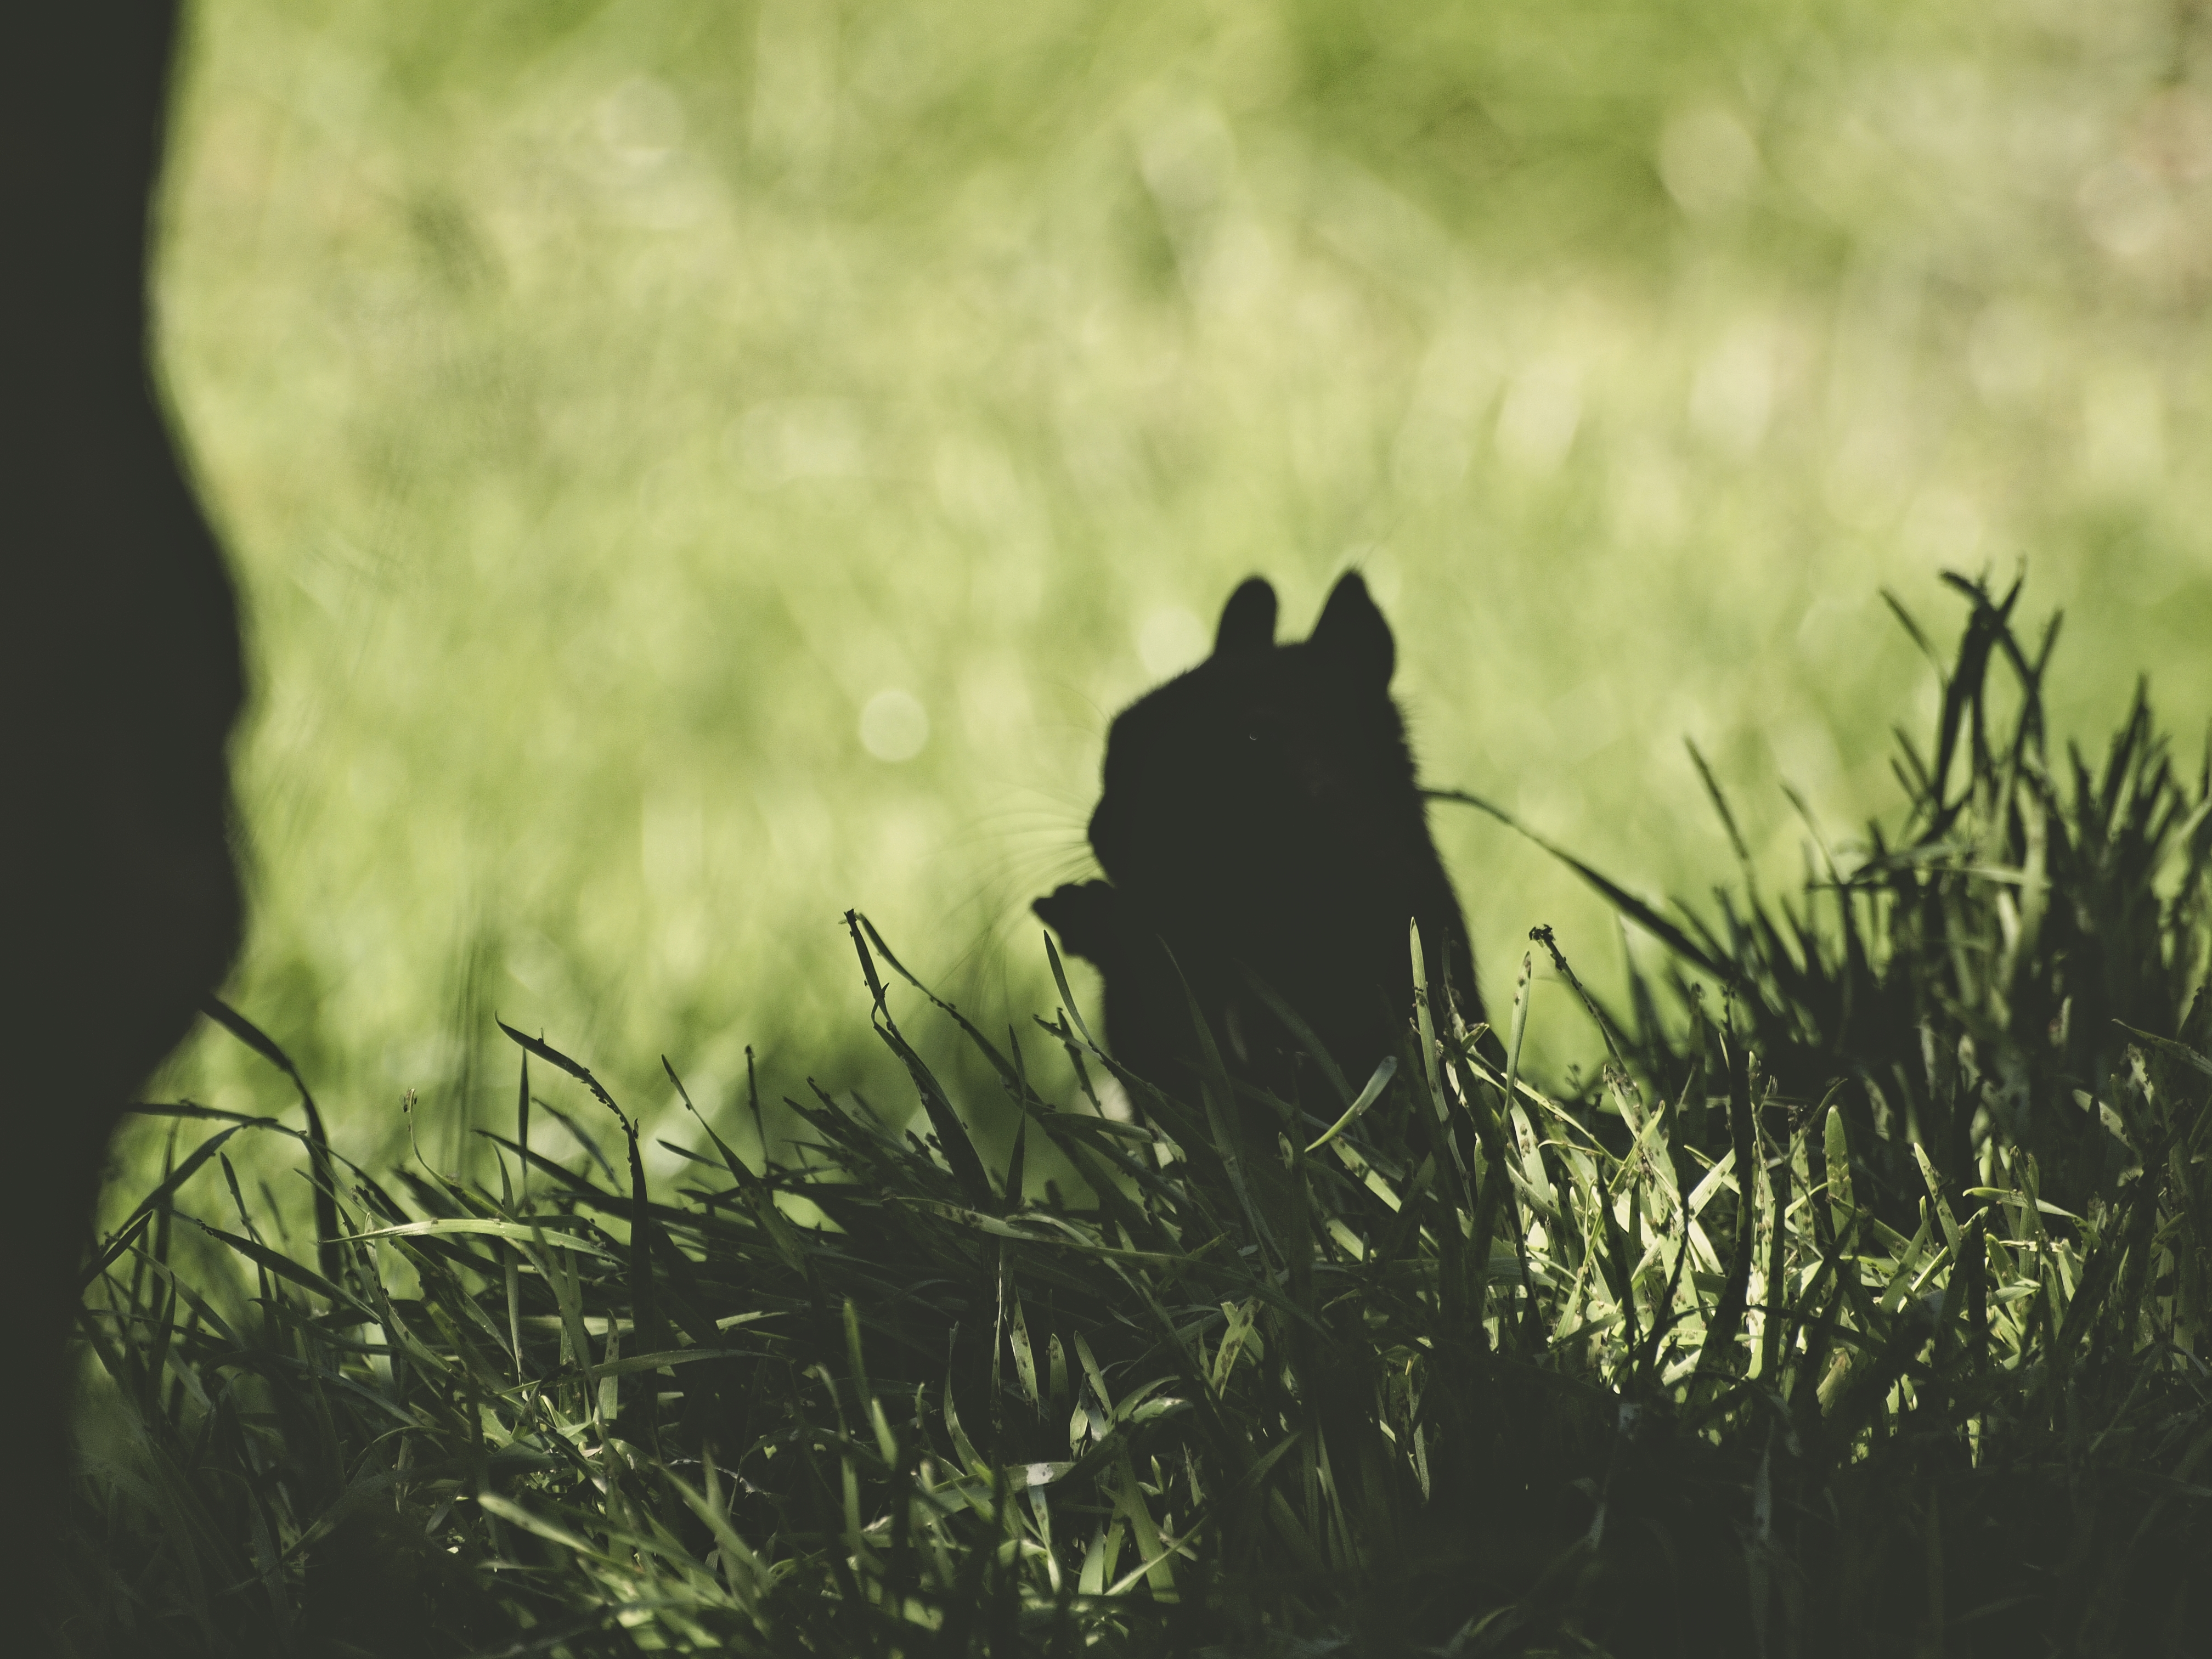 104805 download wallpaper Animals, Squirrel, Silhouette, Dark, Grass, Animal screensavers and pictures for free